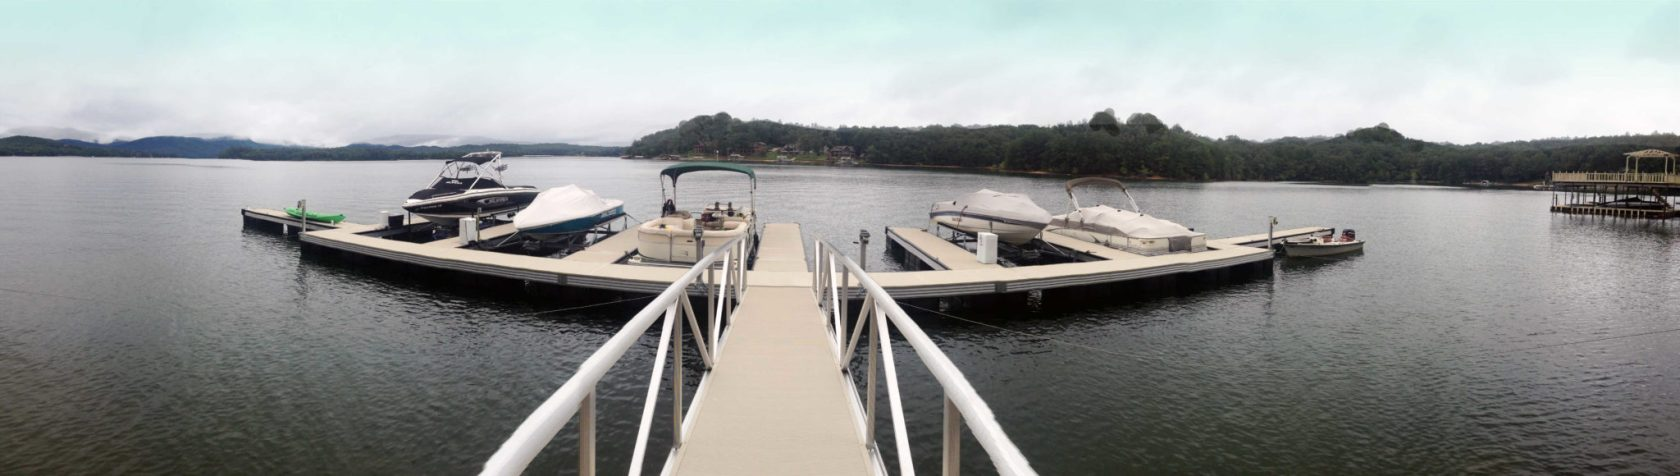 wahoo aluminum docks commercial marine construction hideaway curved dock with multiple slips wide angle shot